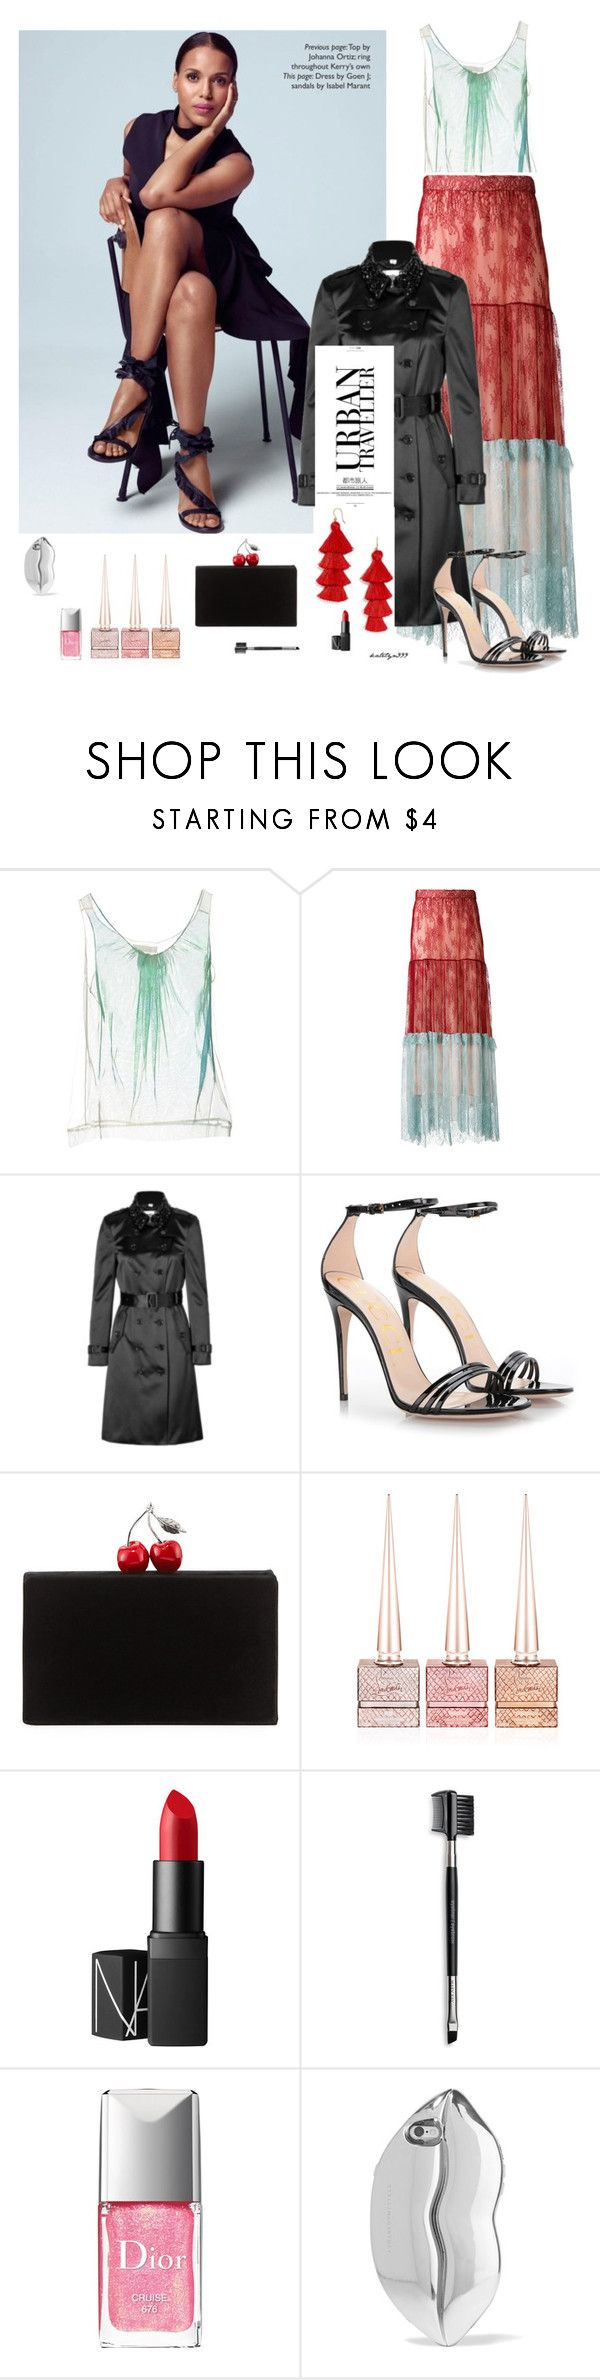 """""""Urban traveller"""" by katelyn999 ❤ liked on Polyvore featuring Chloé, Philosophy di Lorenzo Serafini, Burberry, Gucci, Edie Parker, Christian Louboutin, NARS Cosmetics, Mary Kay, Christian Dior and STELLA McCARTNEY"""